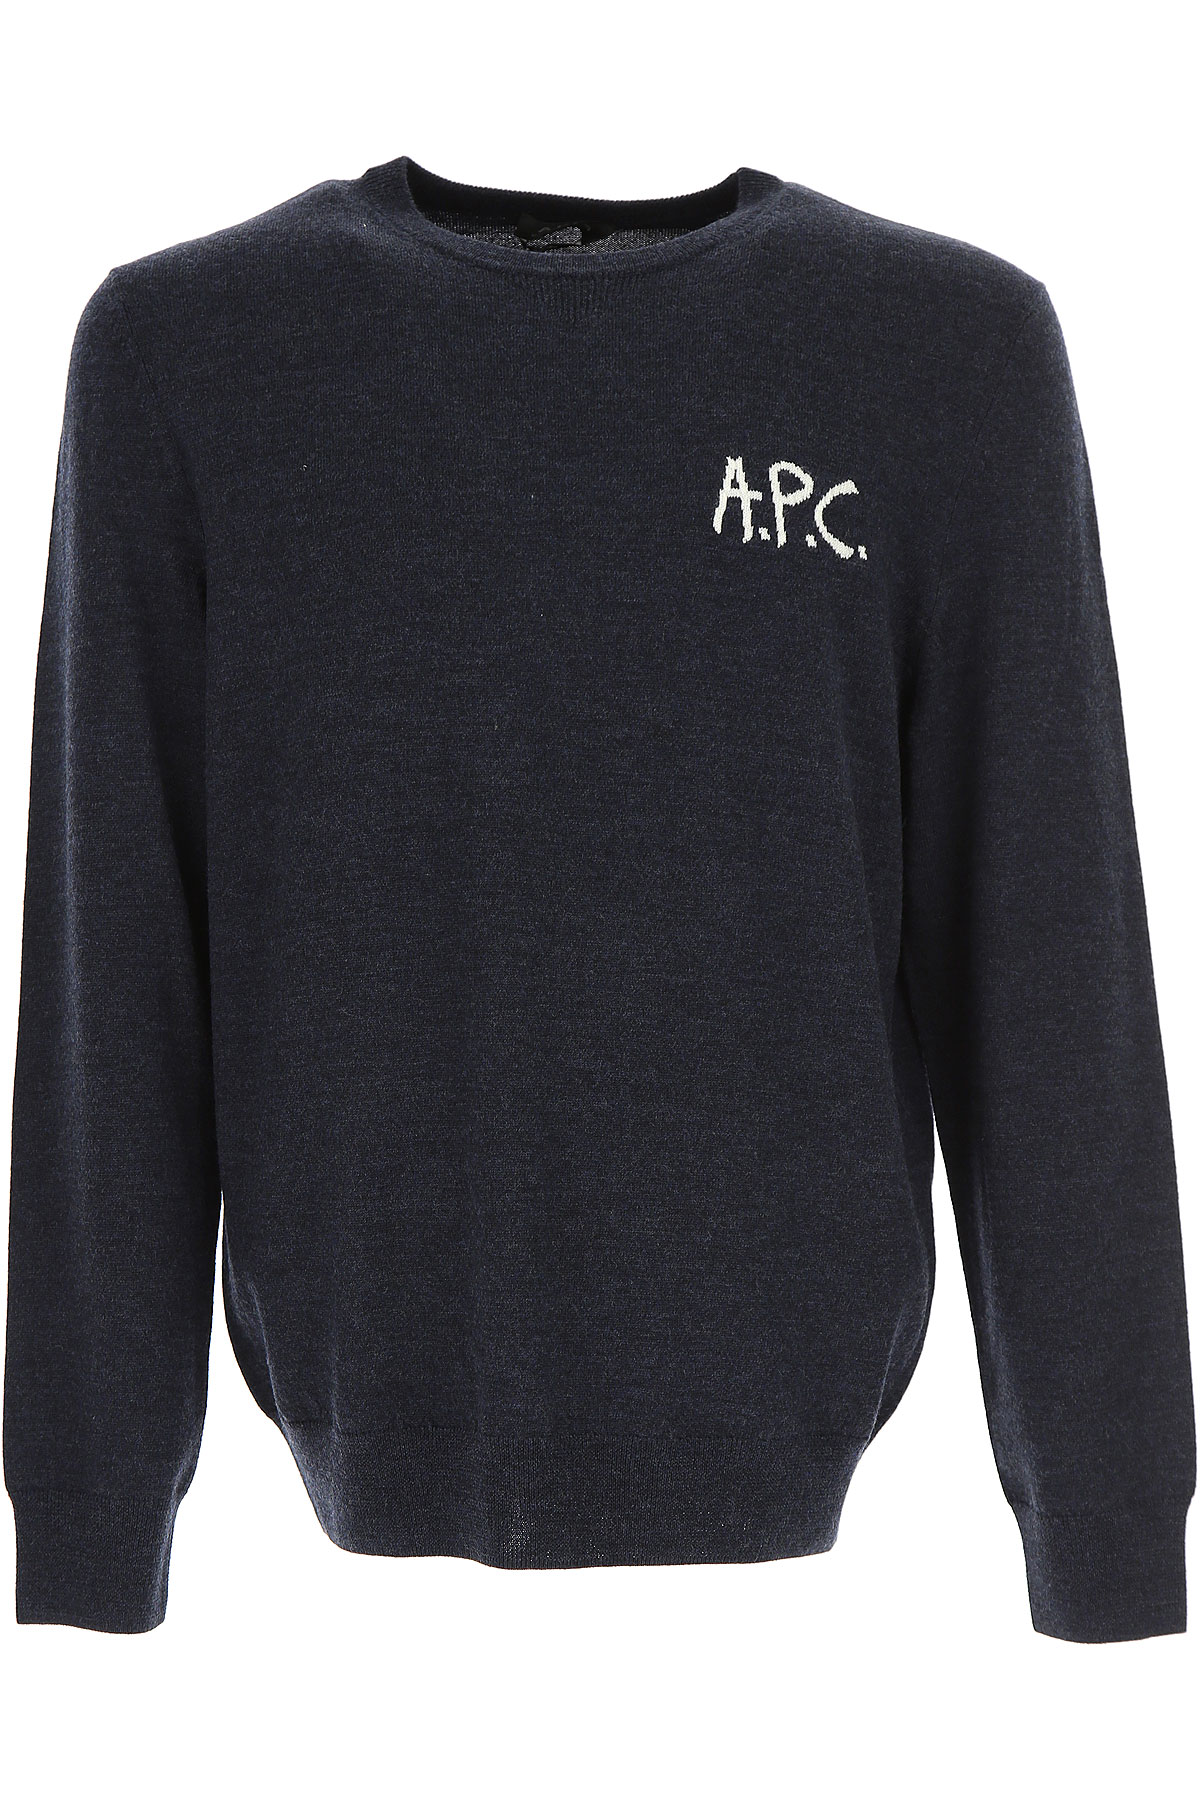 Image of A.P.C Sweater for Men Jumper, navy, merino wool, 2017, L M XL